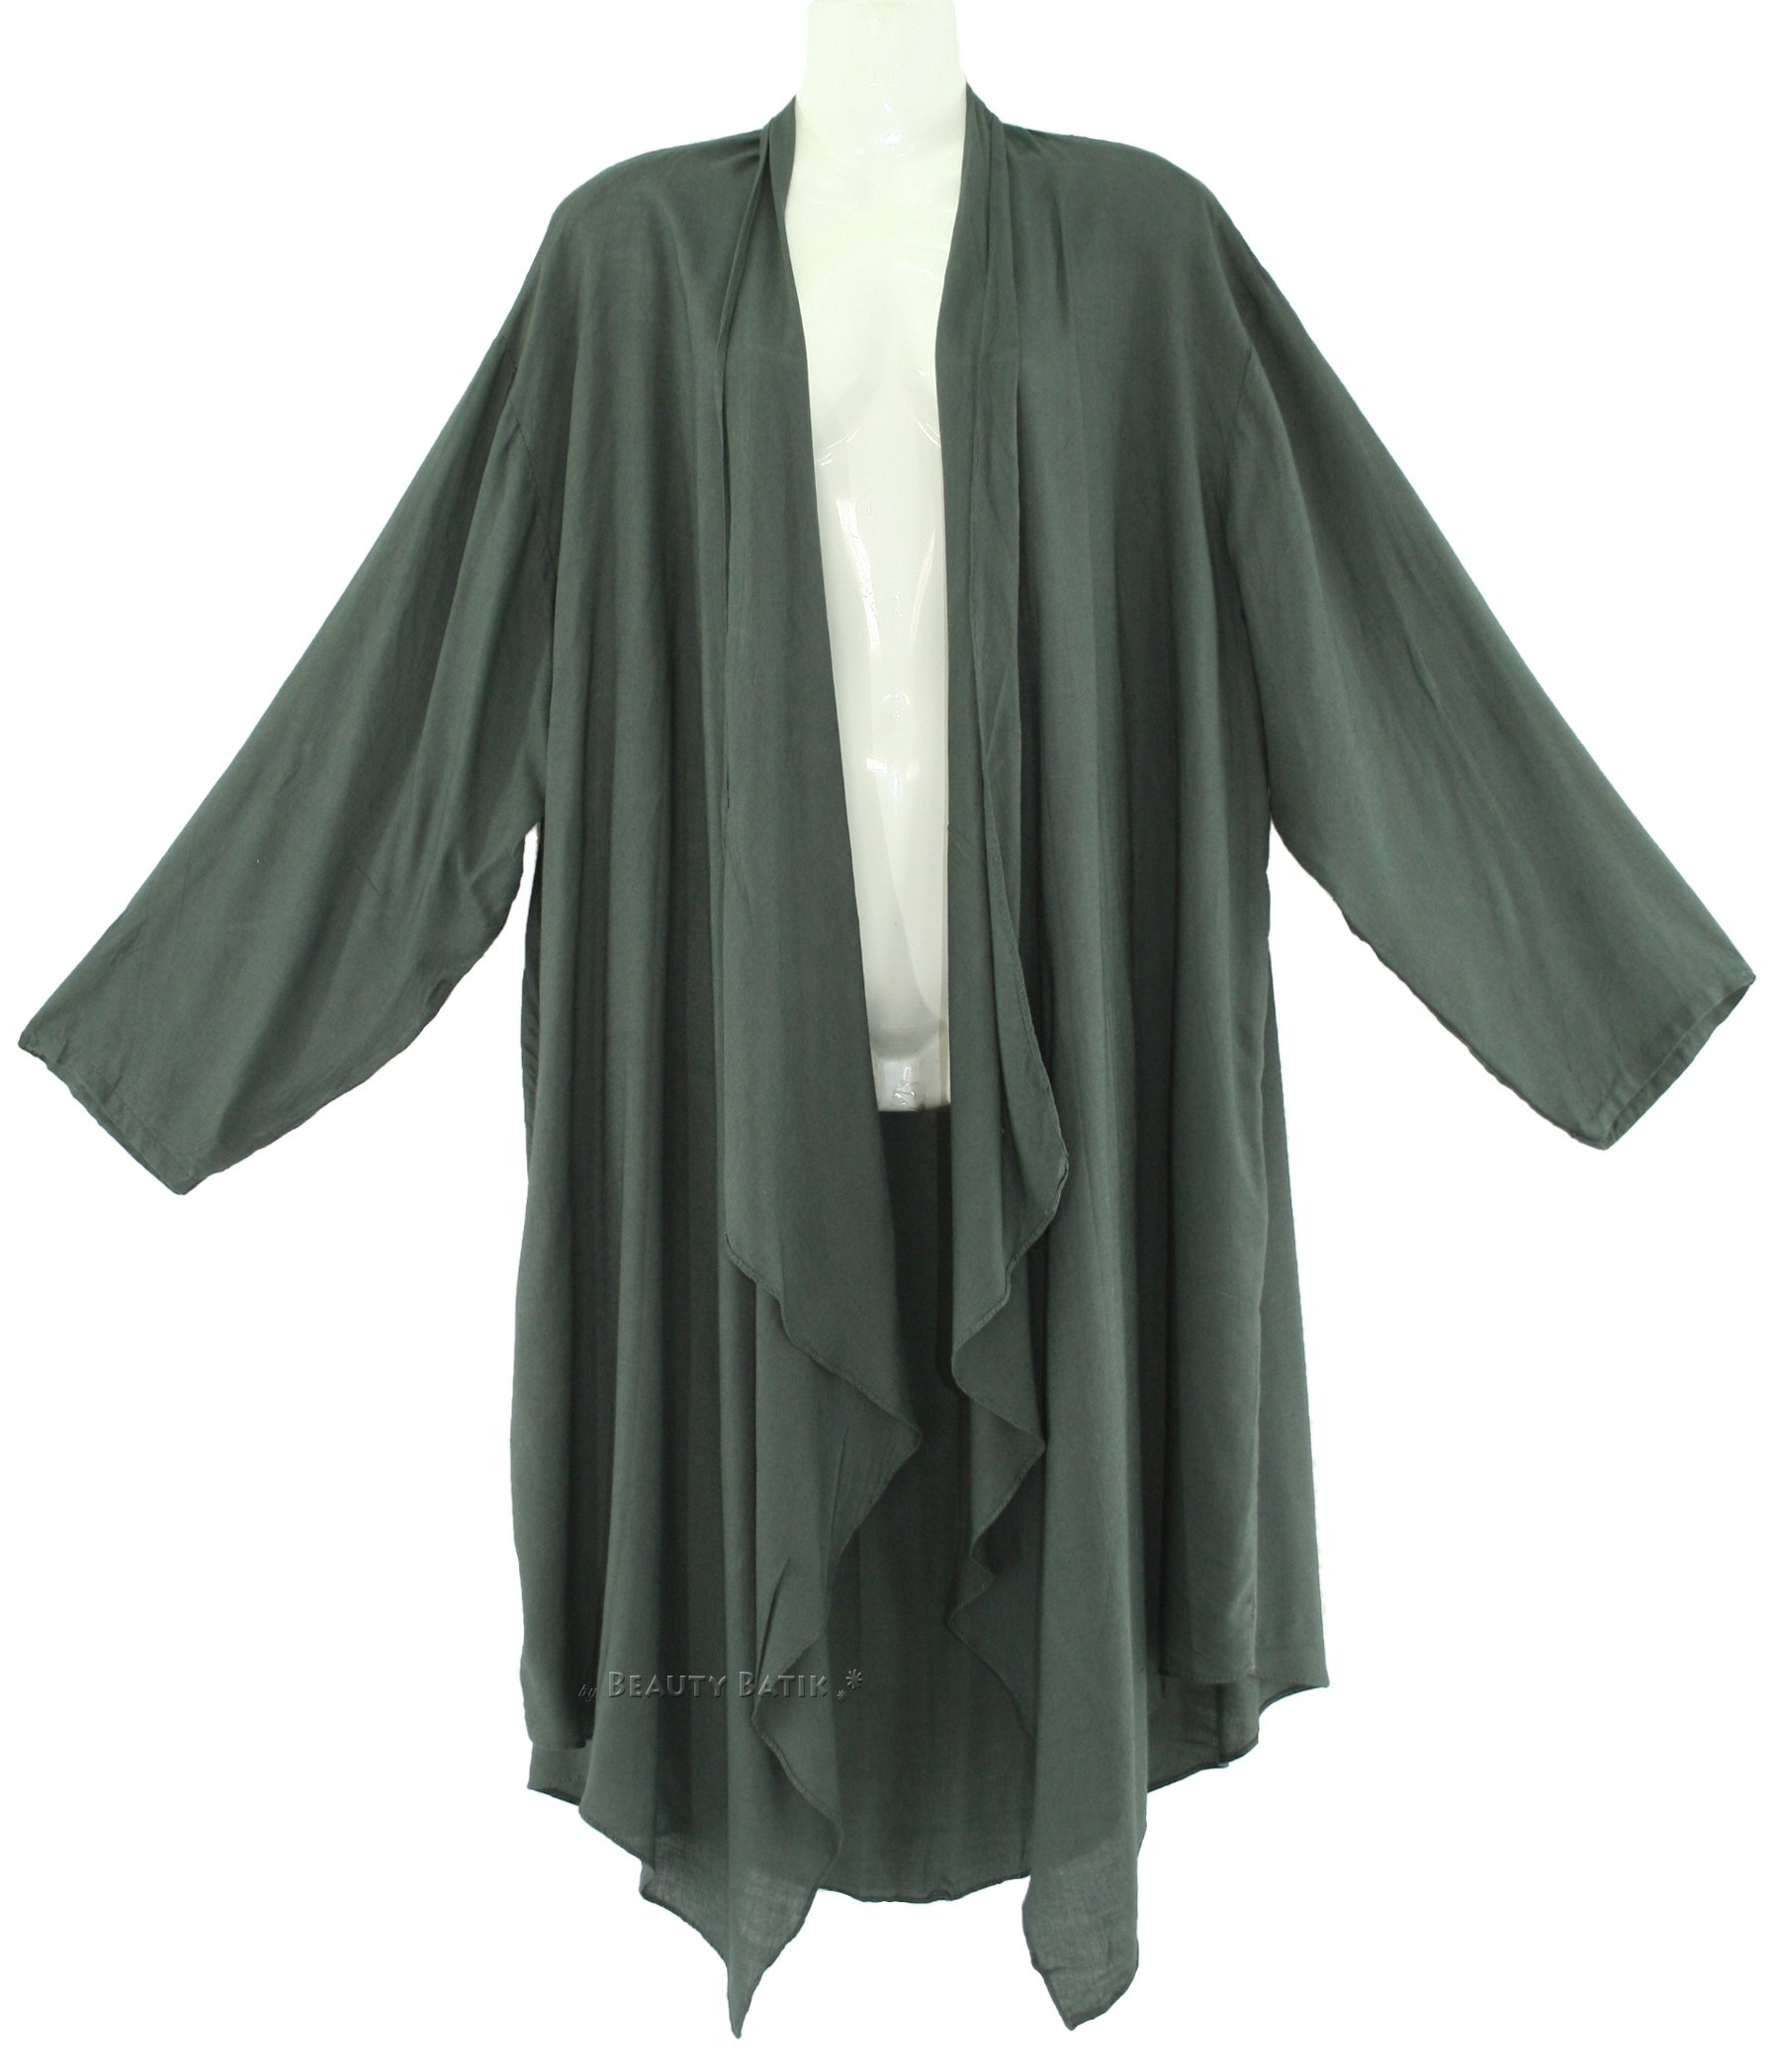 Women Long Sleeve Plus Size Cardigan Cover up Duster Jacket 1X 2X ...